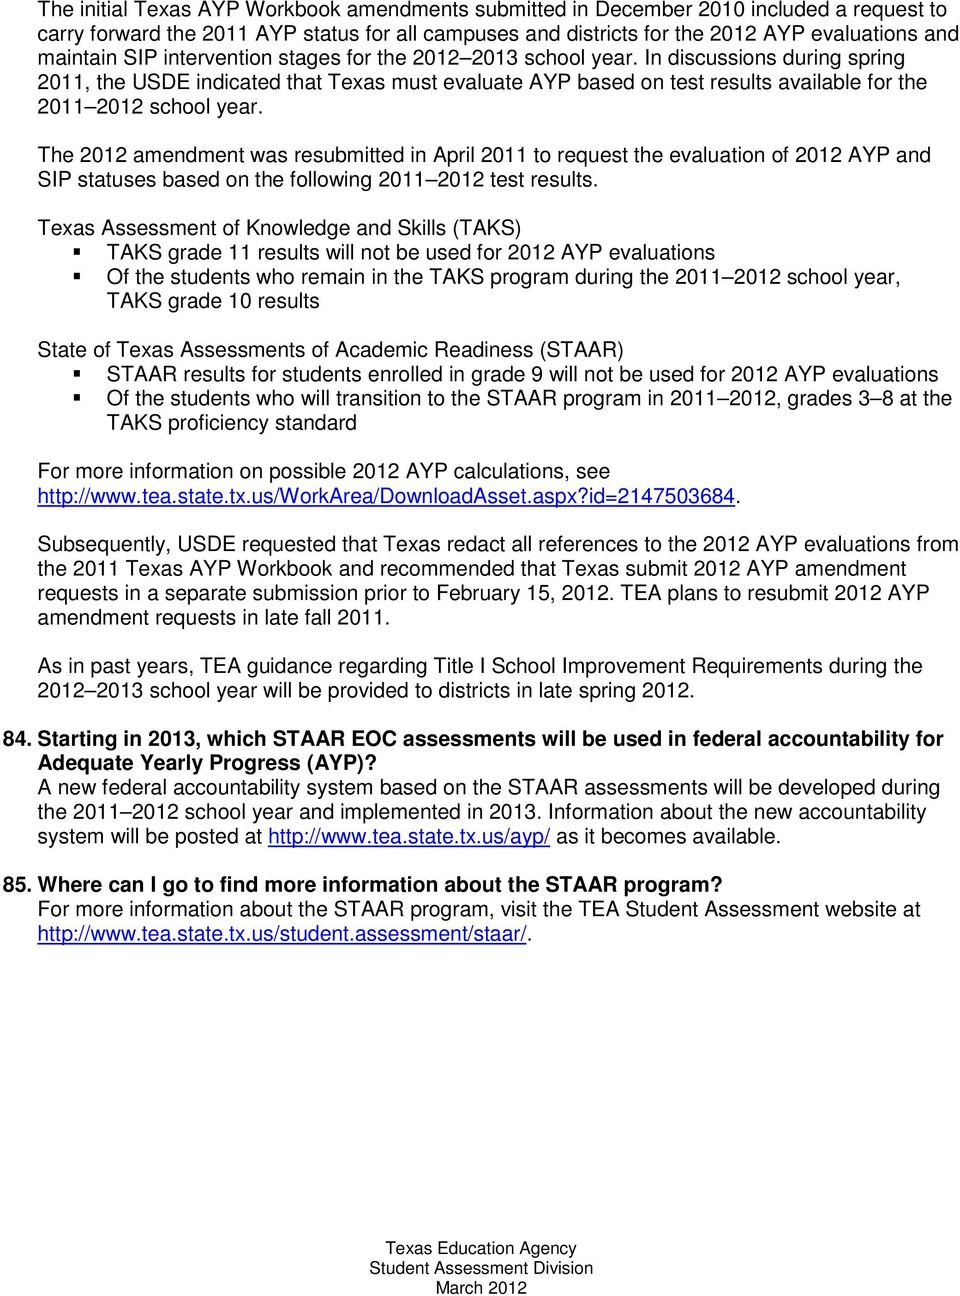 The 2012 amendment was resubmitted in April 2011 to request the evaluation of 2012 AYP and SIP statuses based on the following 2011 2012 test results.